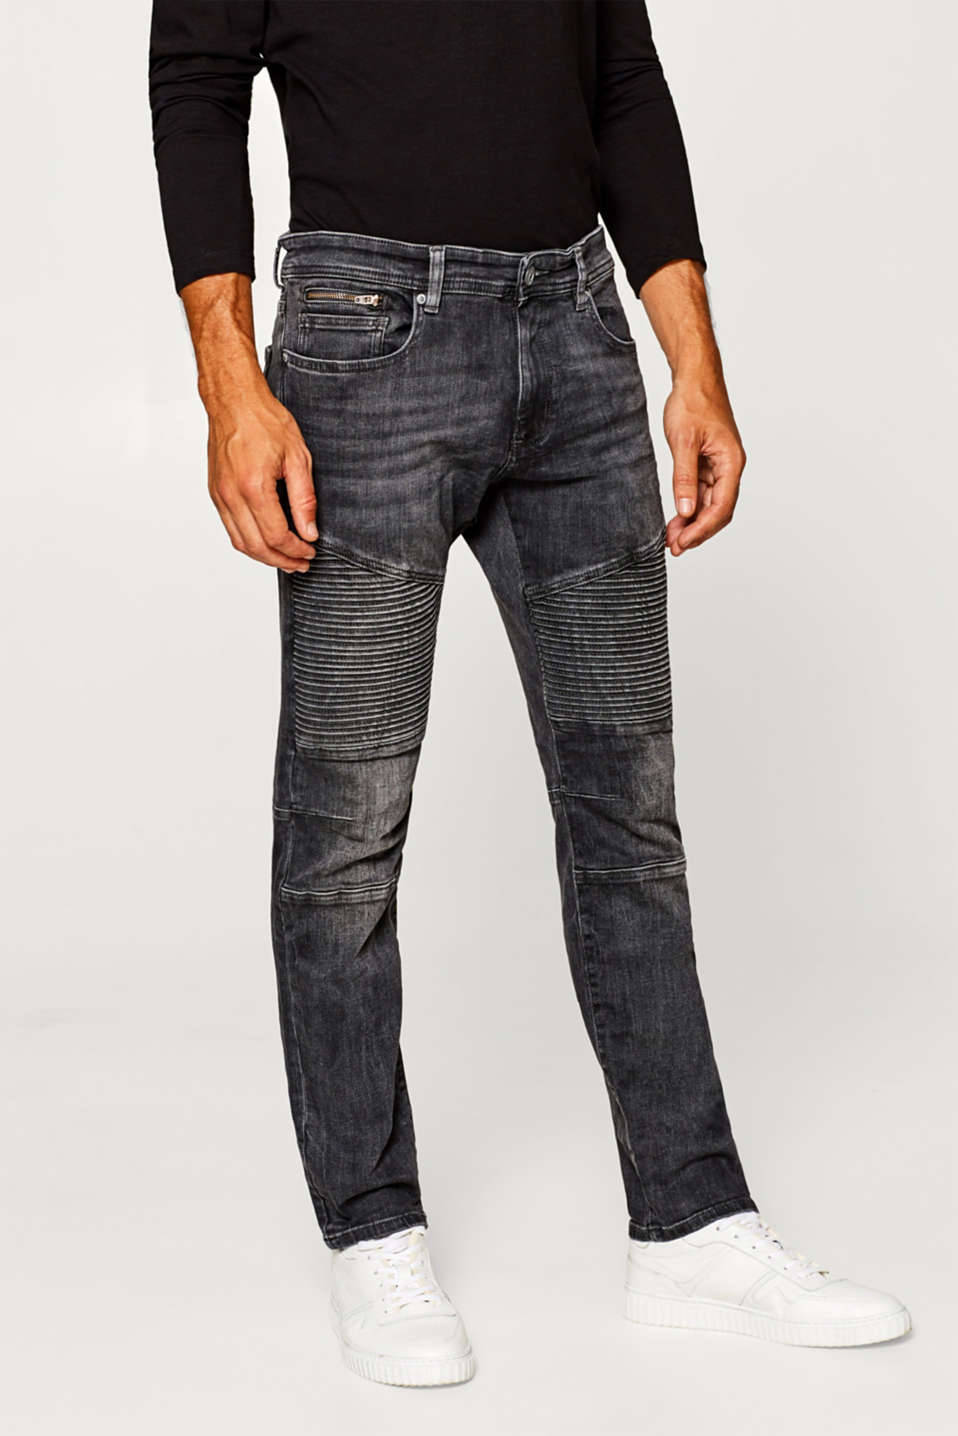 edc - Stretch jeans with biker stitching